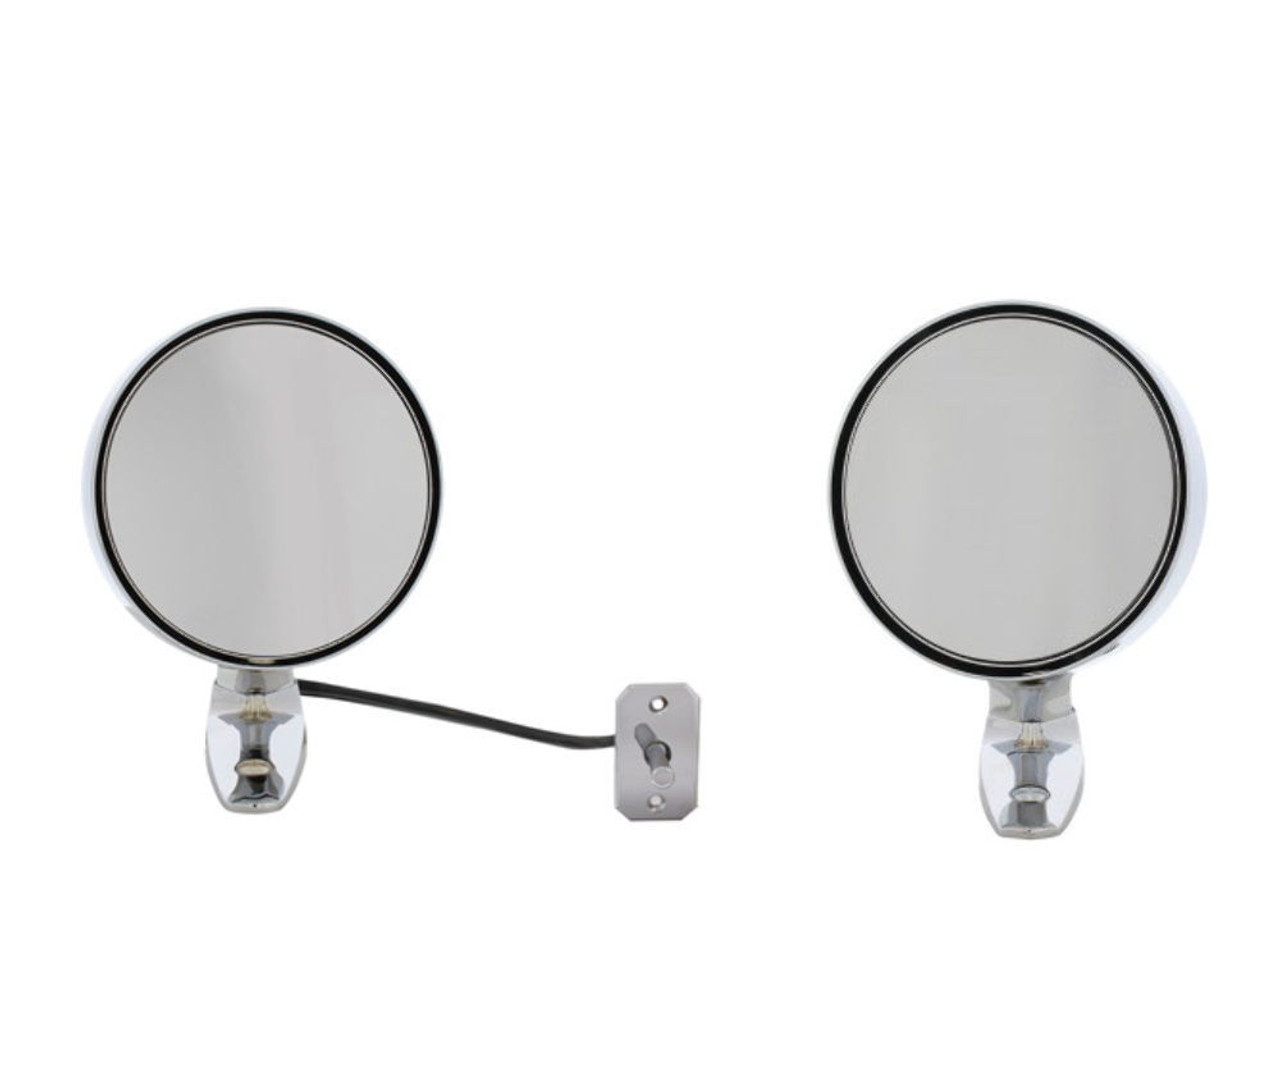 1964-1/2 1965 1966 Ford Mustang Exterior Mirror Kit w/ Remote, PAIR